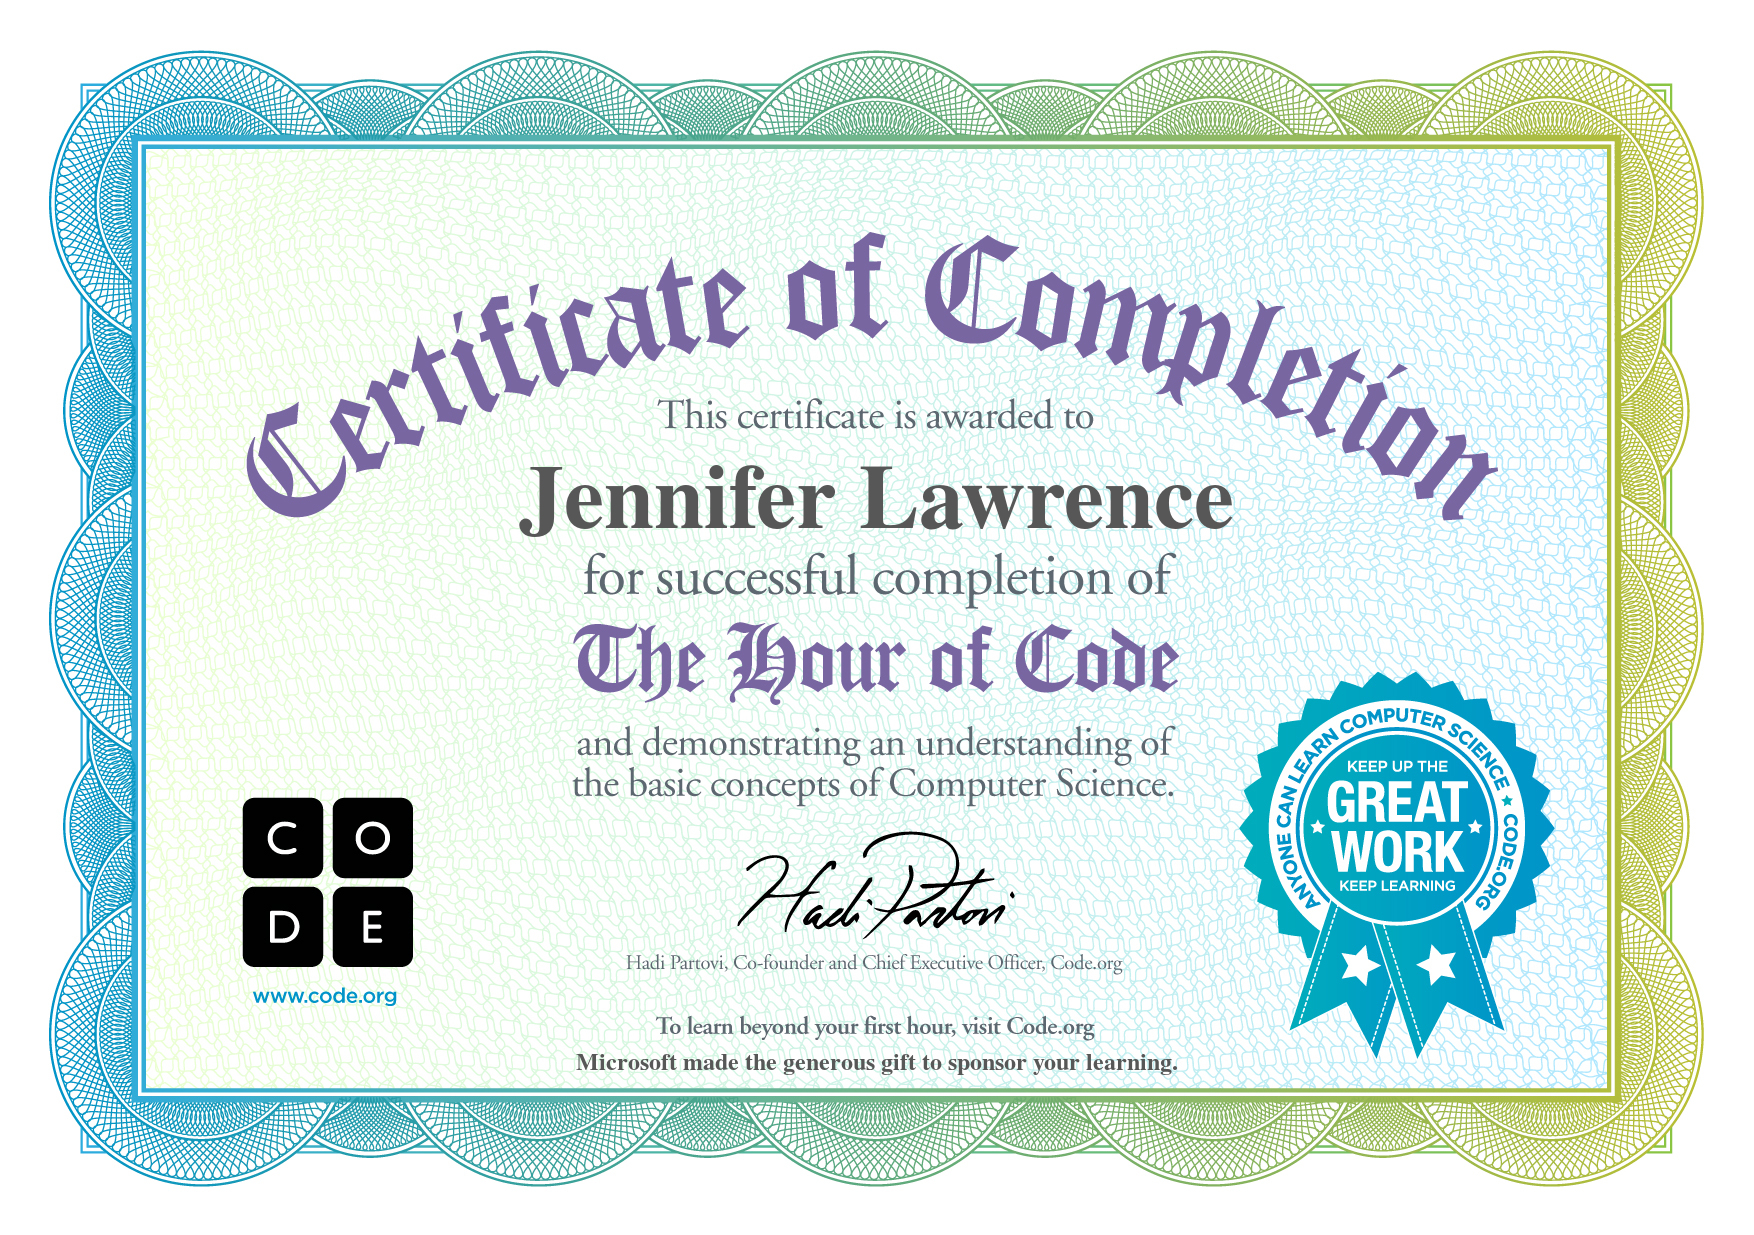 Certificate hour of code 2014 english.jpg